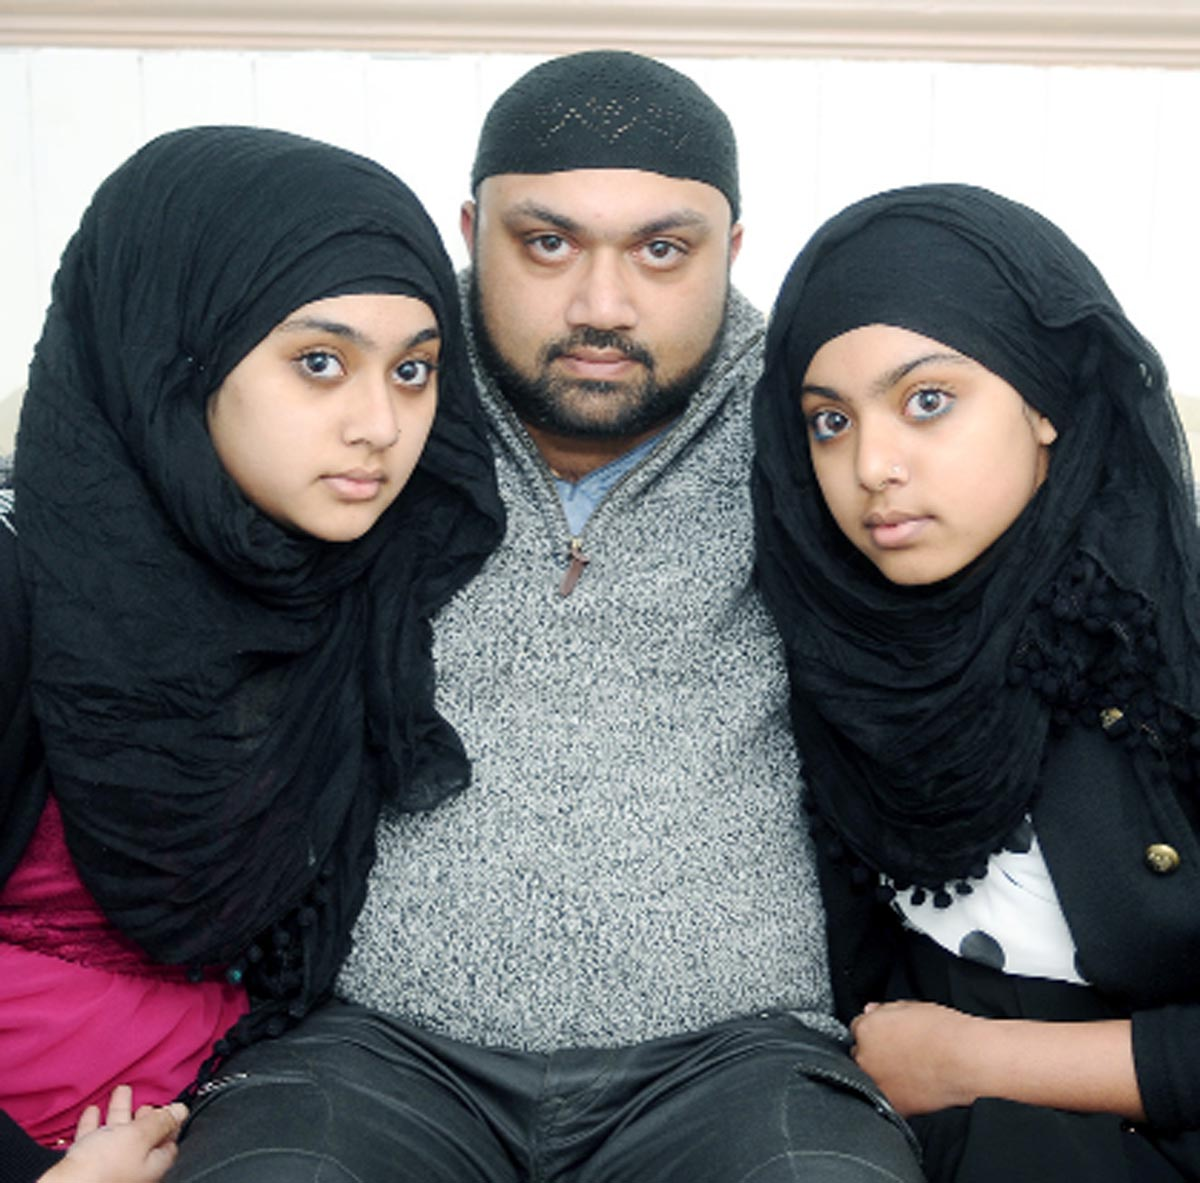 Knife gang threaten Burnley restaurant owner's daughters in £10,000 jewellery raid